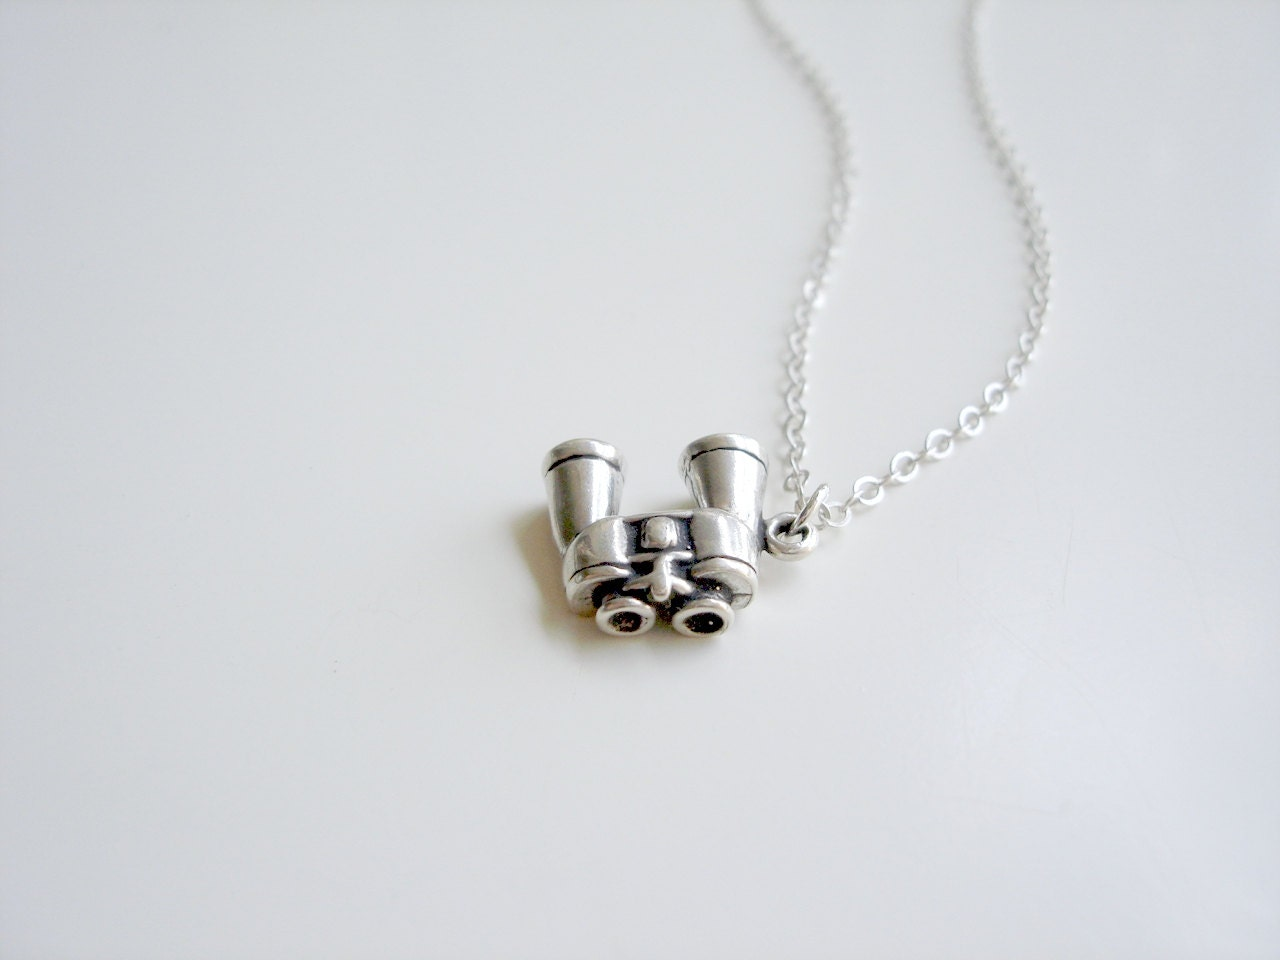 Suzy - Tiny Sterling Silver Bird Watching Binoculars Necklace, Moonrise Kingdom by Emeline Darling - emelinedarling